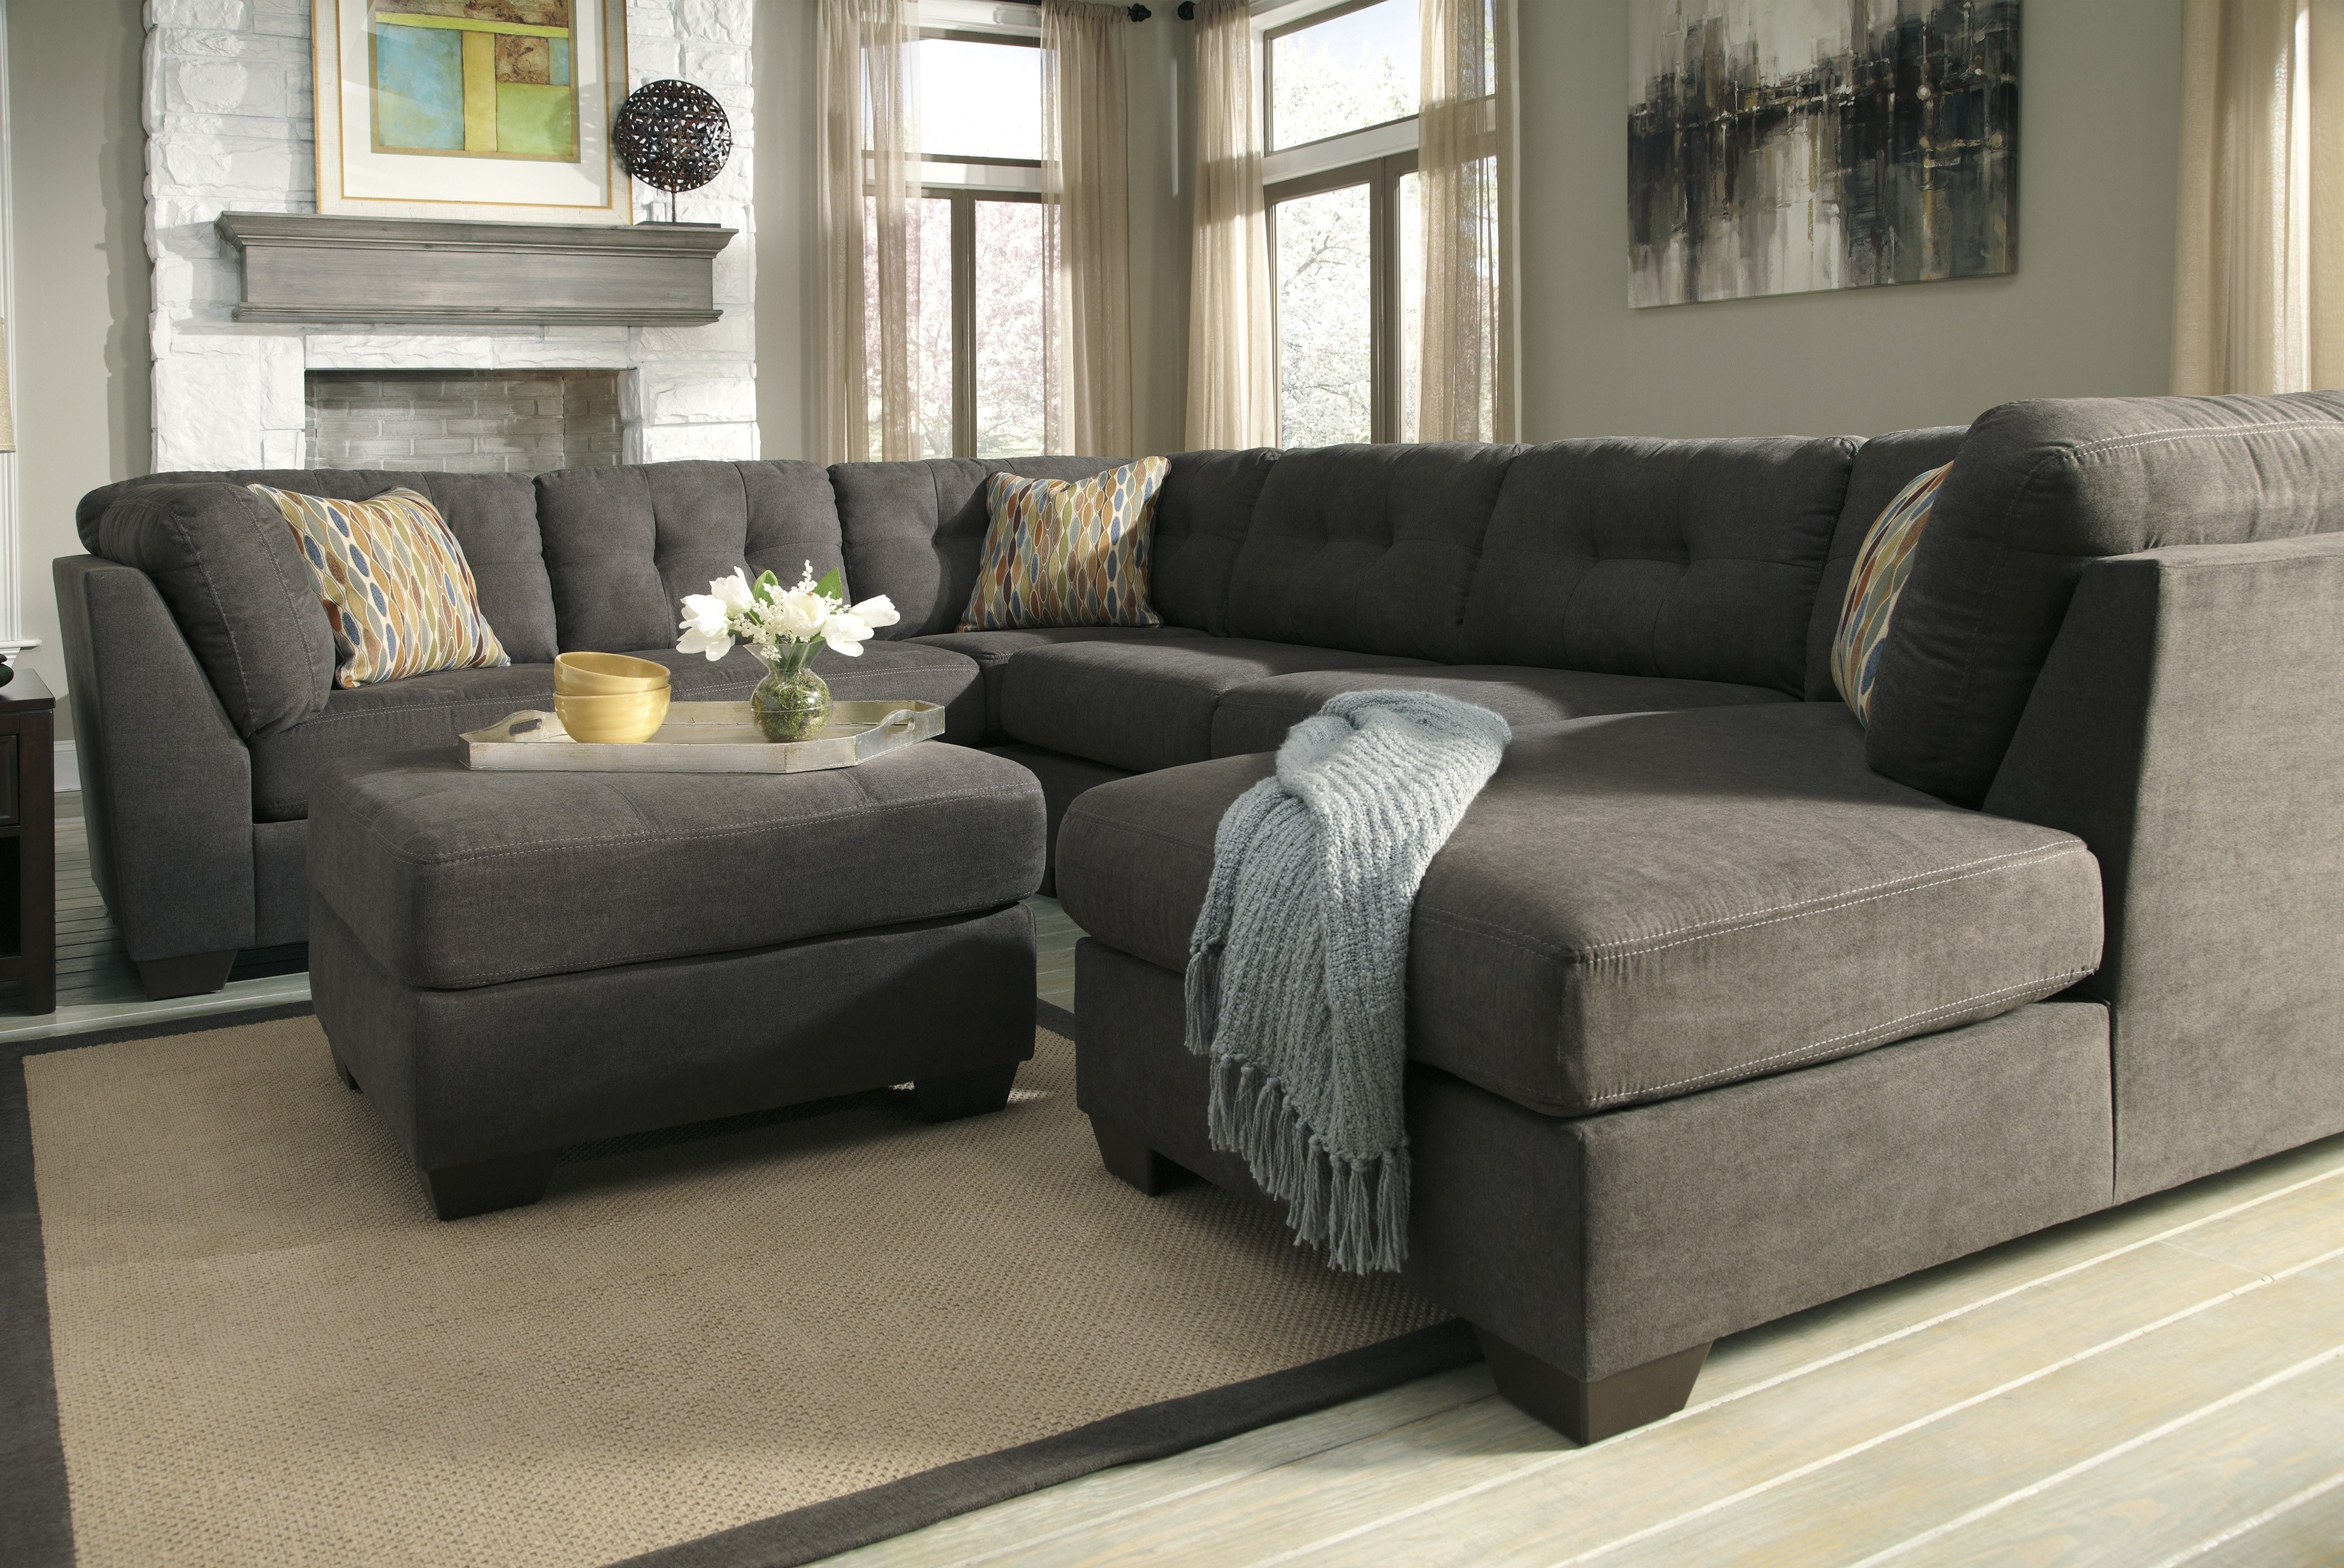 Tufted Sectional Sofa With Chaise – Cleanupflorida With Tufted Sectional Sofas With Chaise (Image 9 of 10)